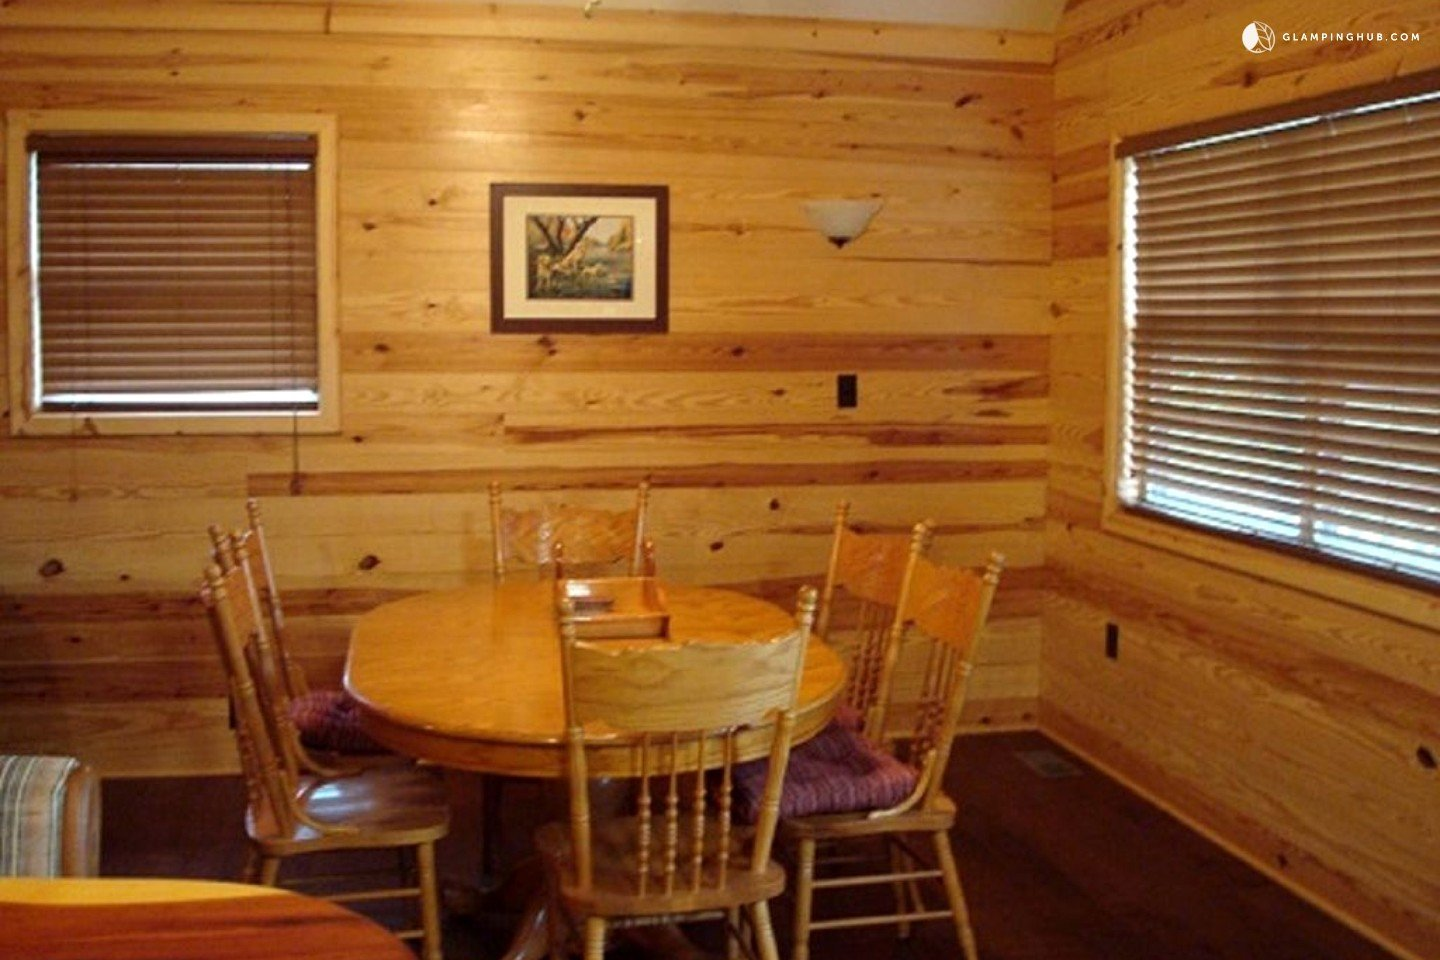 Secluded Cabin Rental Near Table Rock Lake Missouri